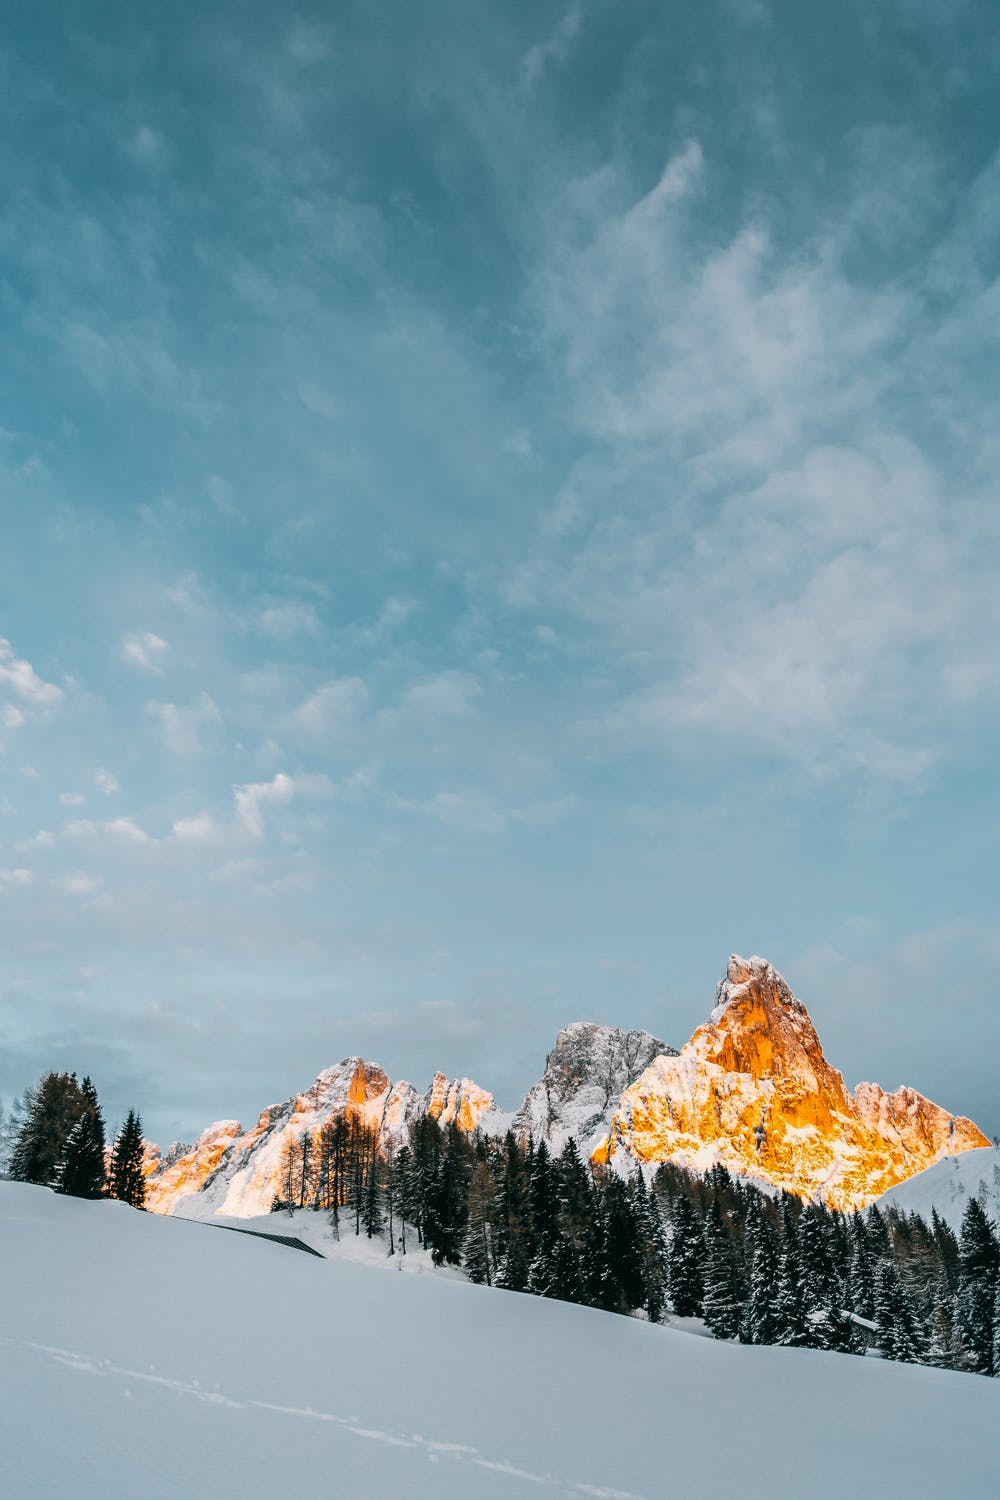 Snow wallpaper with mountains and blue sky